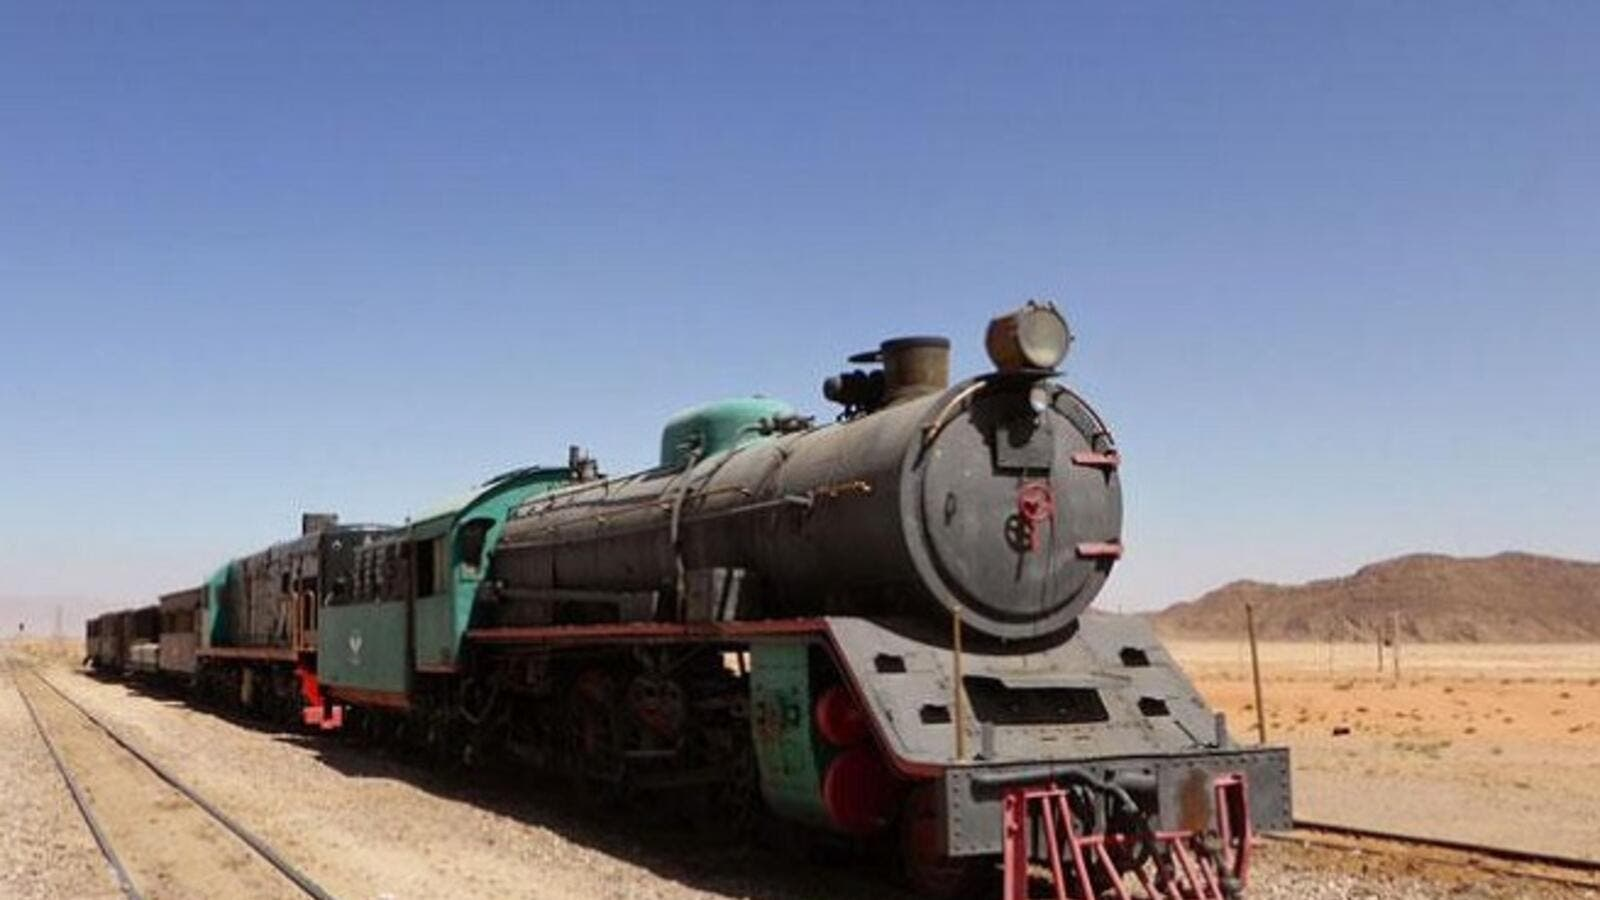 The century-old Hijaz Railway is the only train transporation system in Jordan, limited mainly to phosphate transport. The government is mulling a modern freight railway system that is part of a regional, and maybe global, network. (JT)